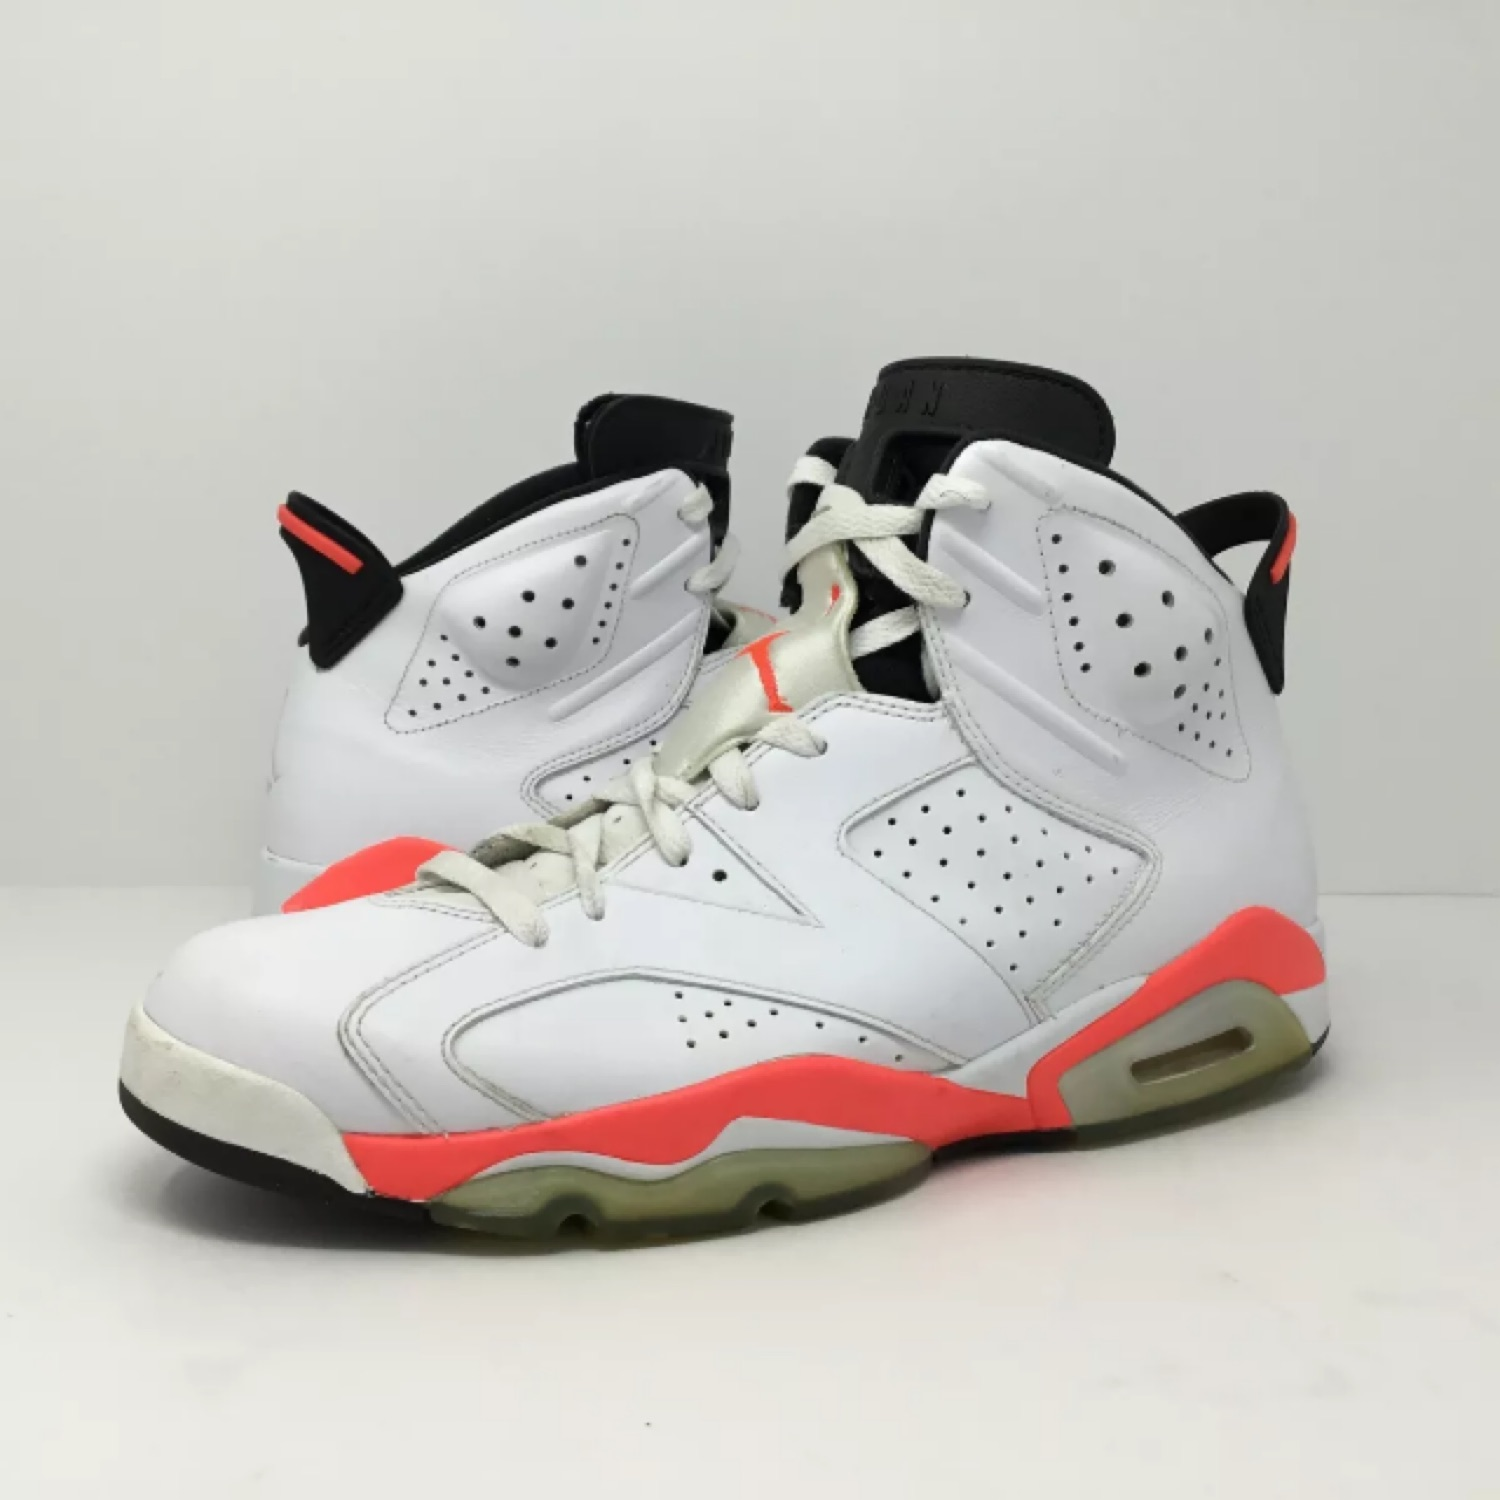 info for eb5e4 46615 Nike Air Jordan 6 Vi White Infrared Size 11